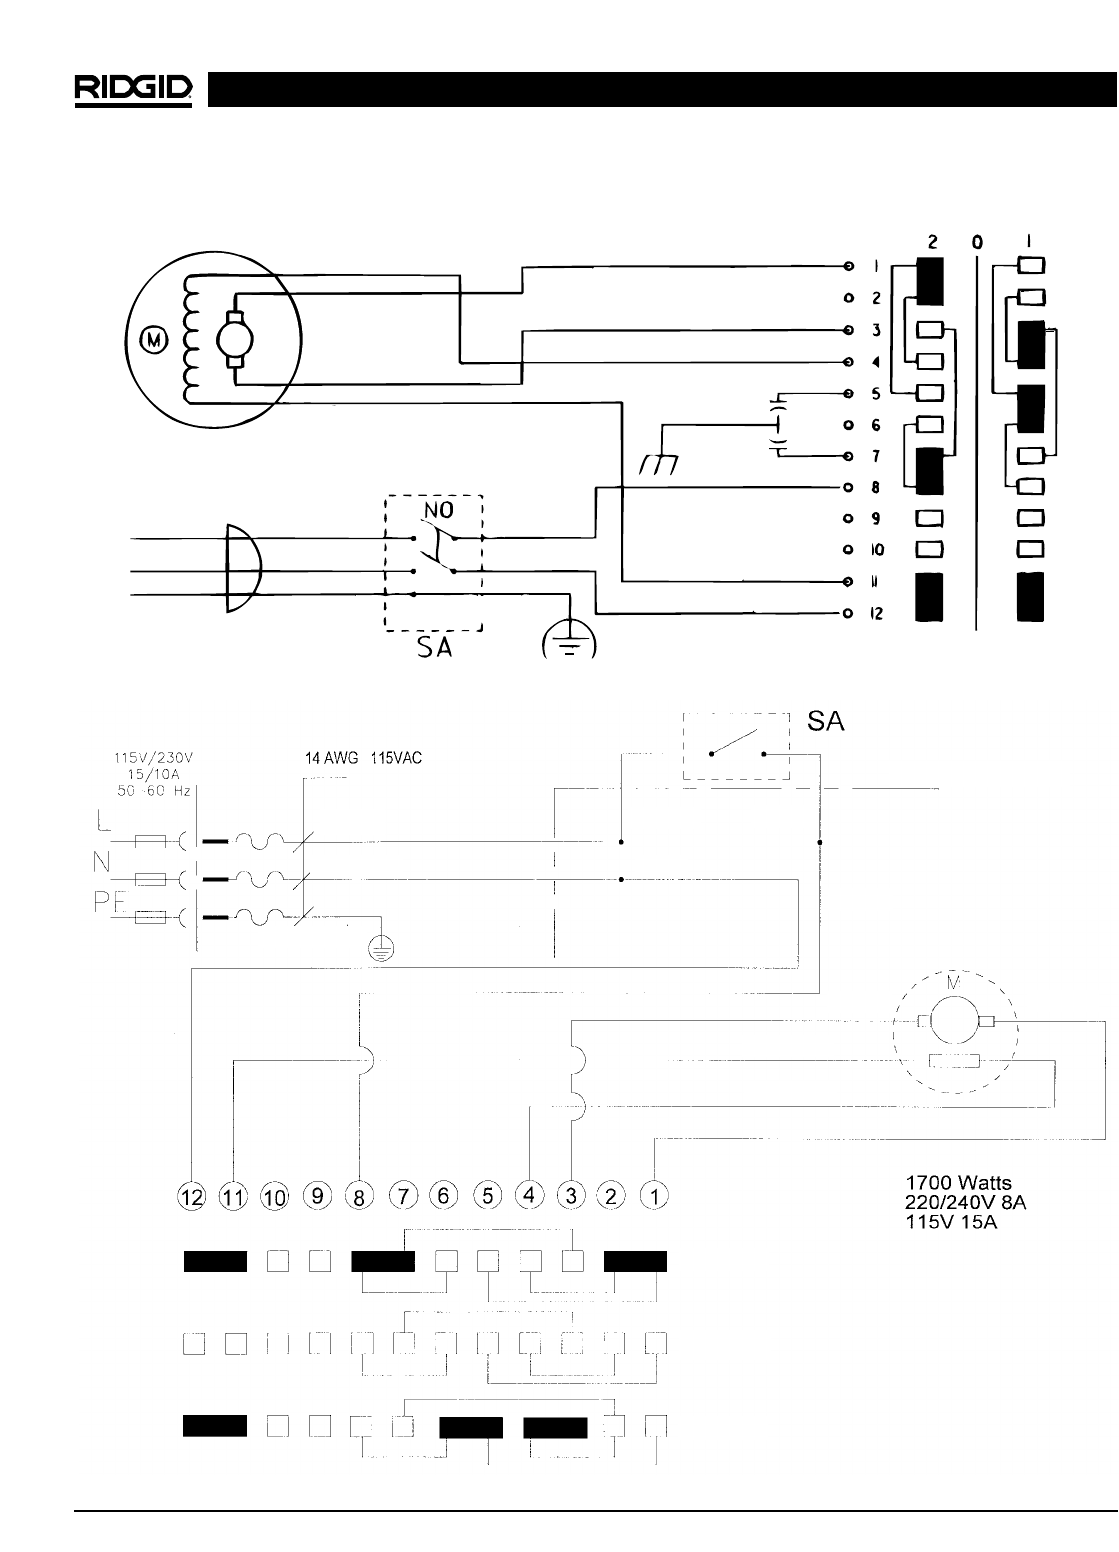 68b109bc 3c1f 445d 9958 08de9edaa37c bg14 page 20 of ridgid sewing machine 300 user guide manualsonline com ridgid r4513 wiring diagram at couponss.co